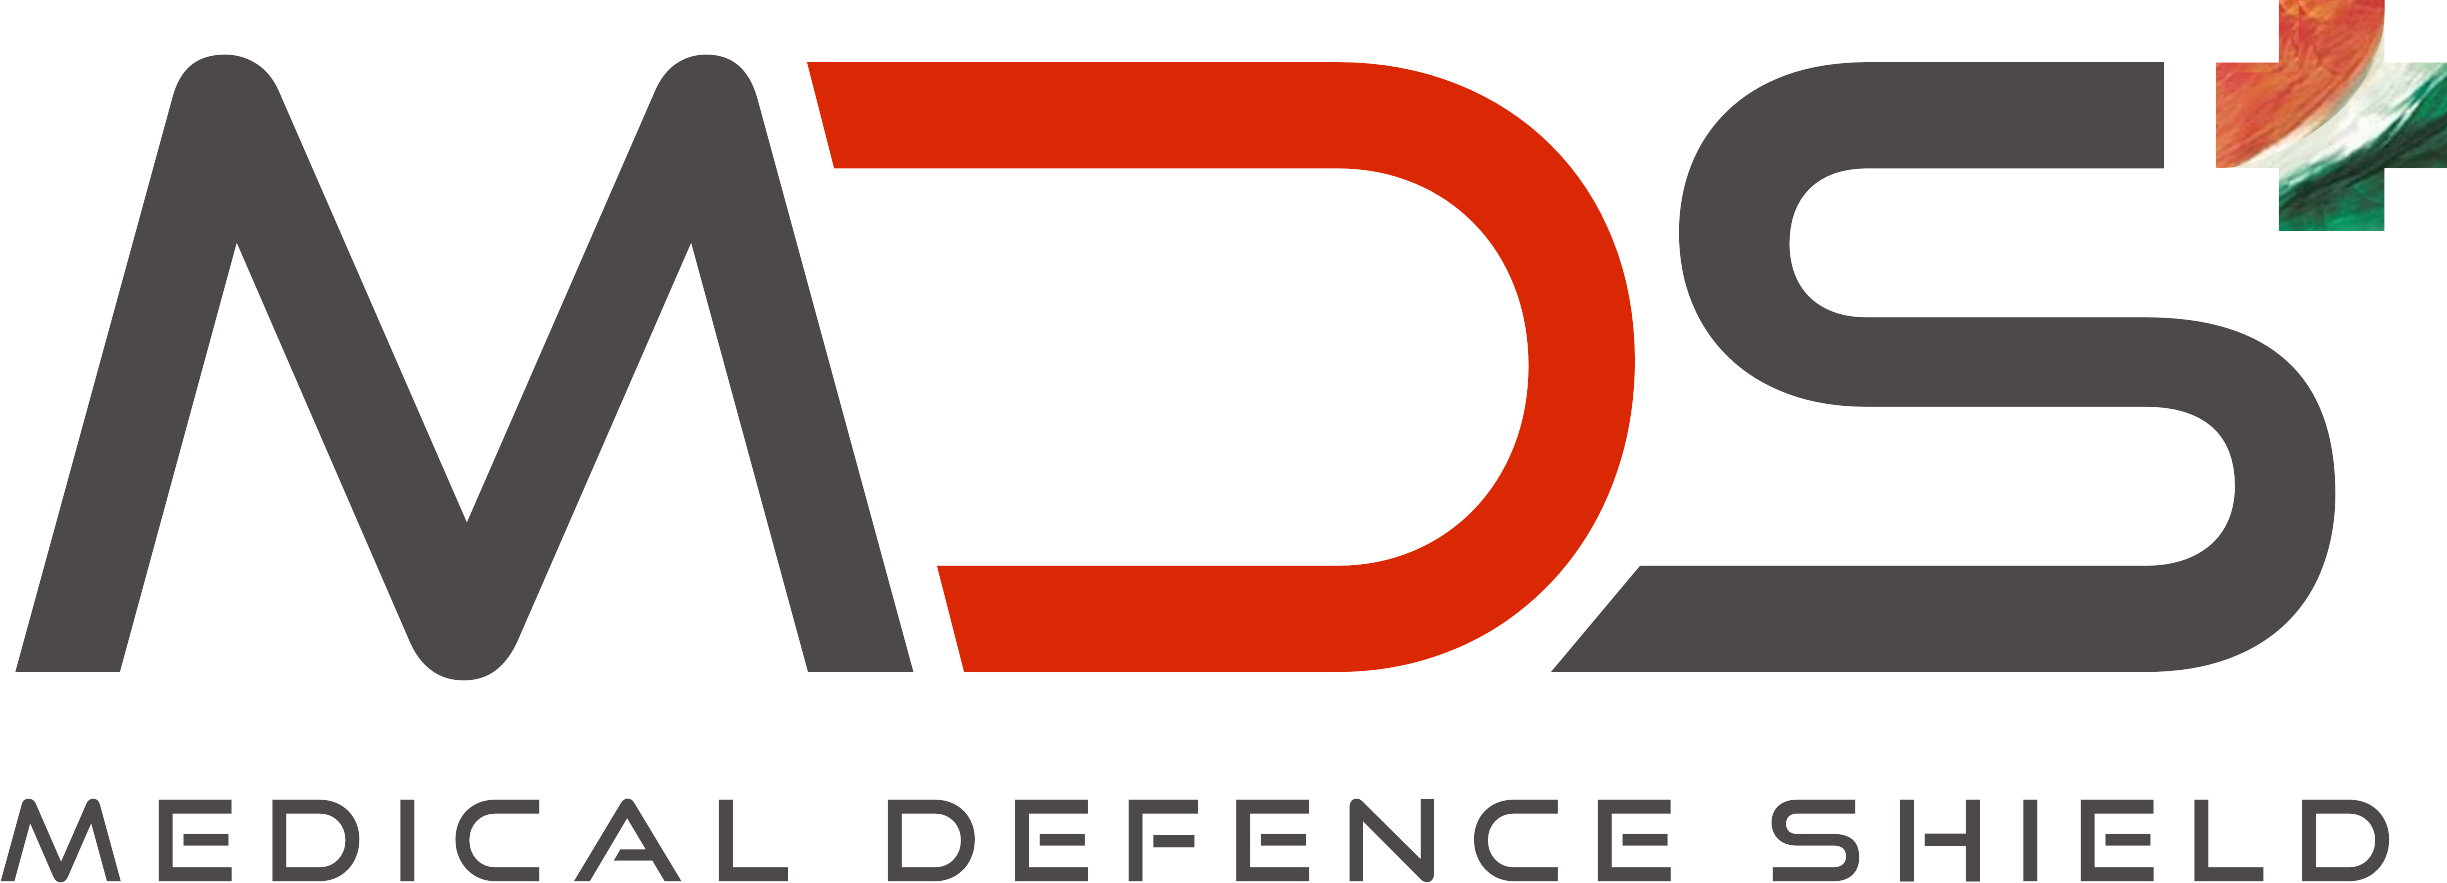 Medical Defence Shield UK